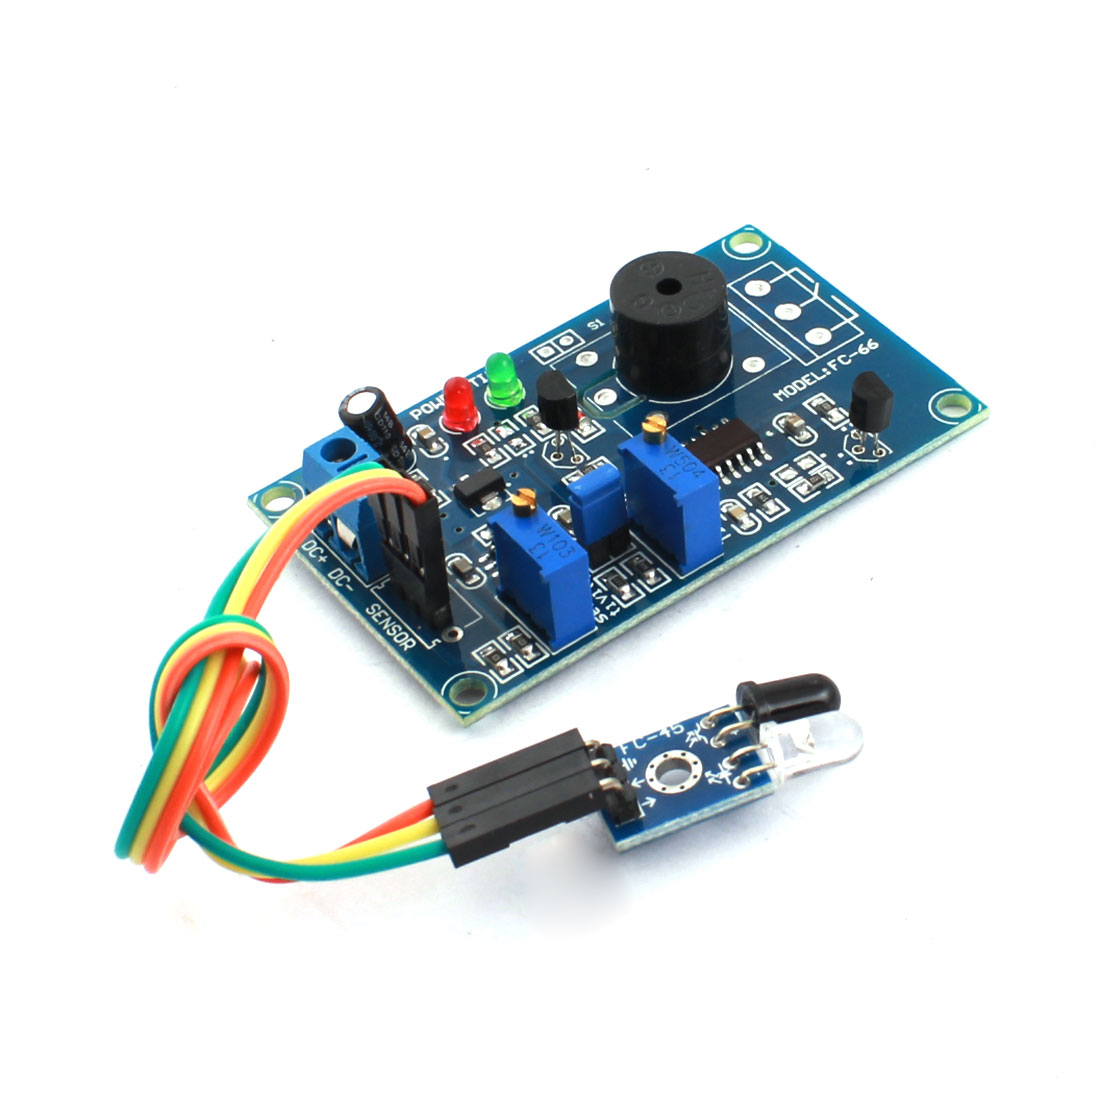 FC-66 0-20S 0-60cm Infrared Reflection Infrared Sensor Time Delay Module w Alarm Buzzer